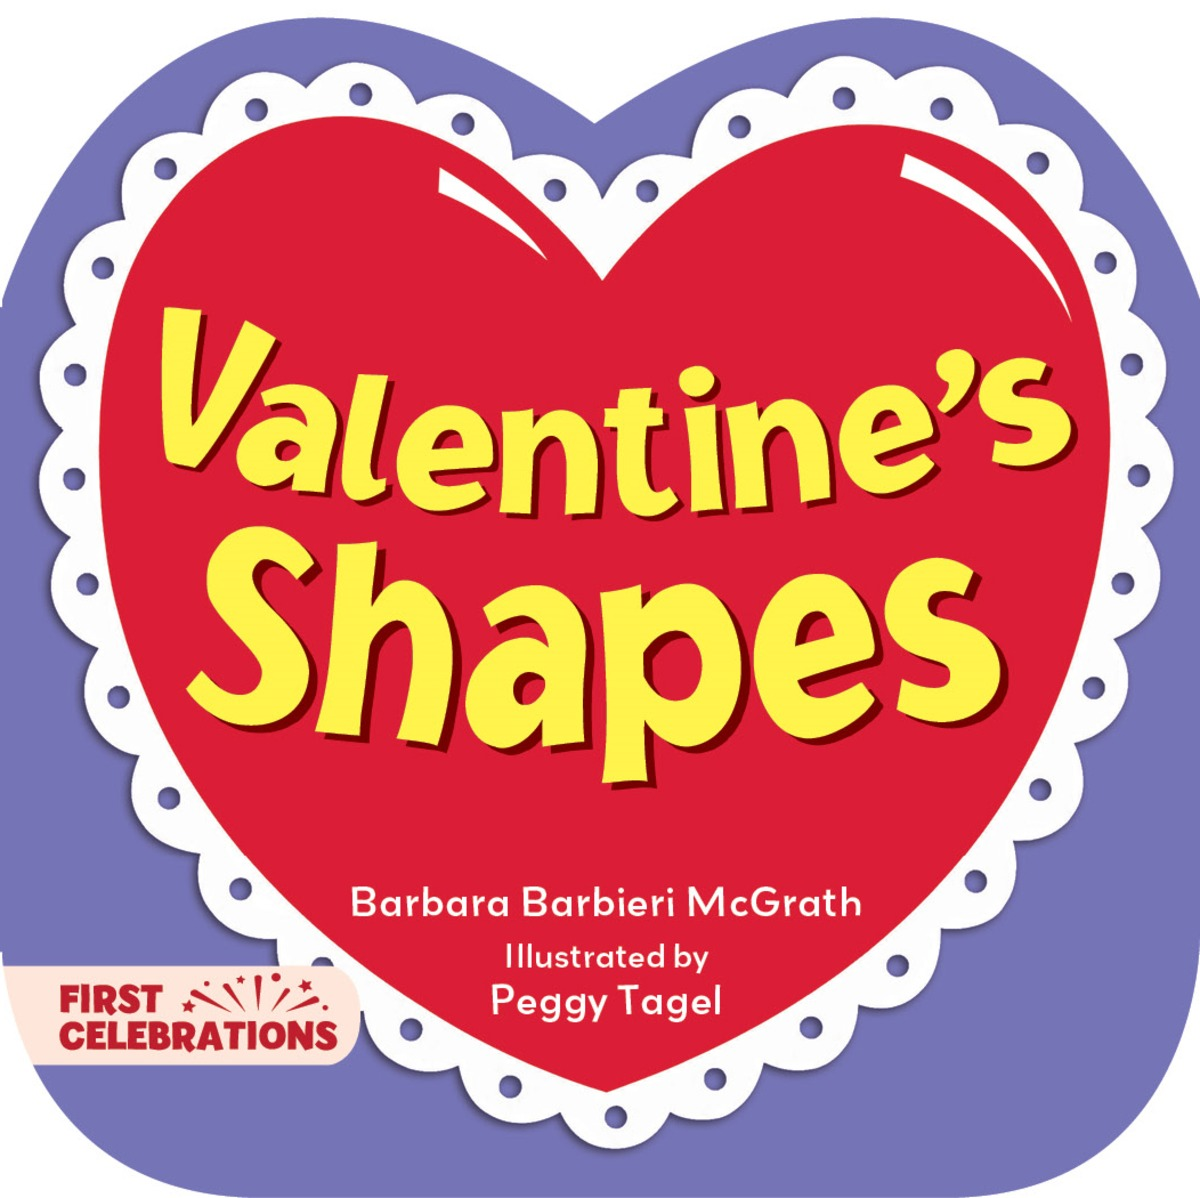 Valentine's Shapes shapes and colors наклейки